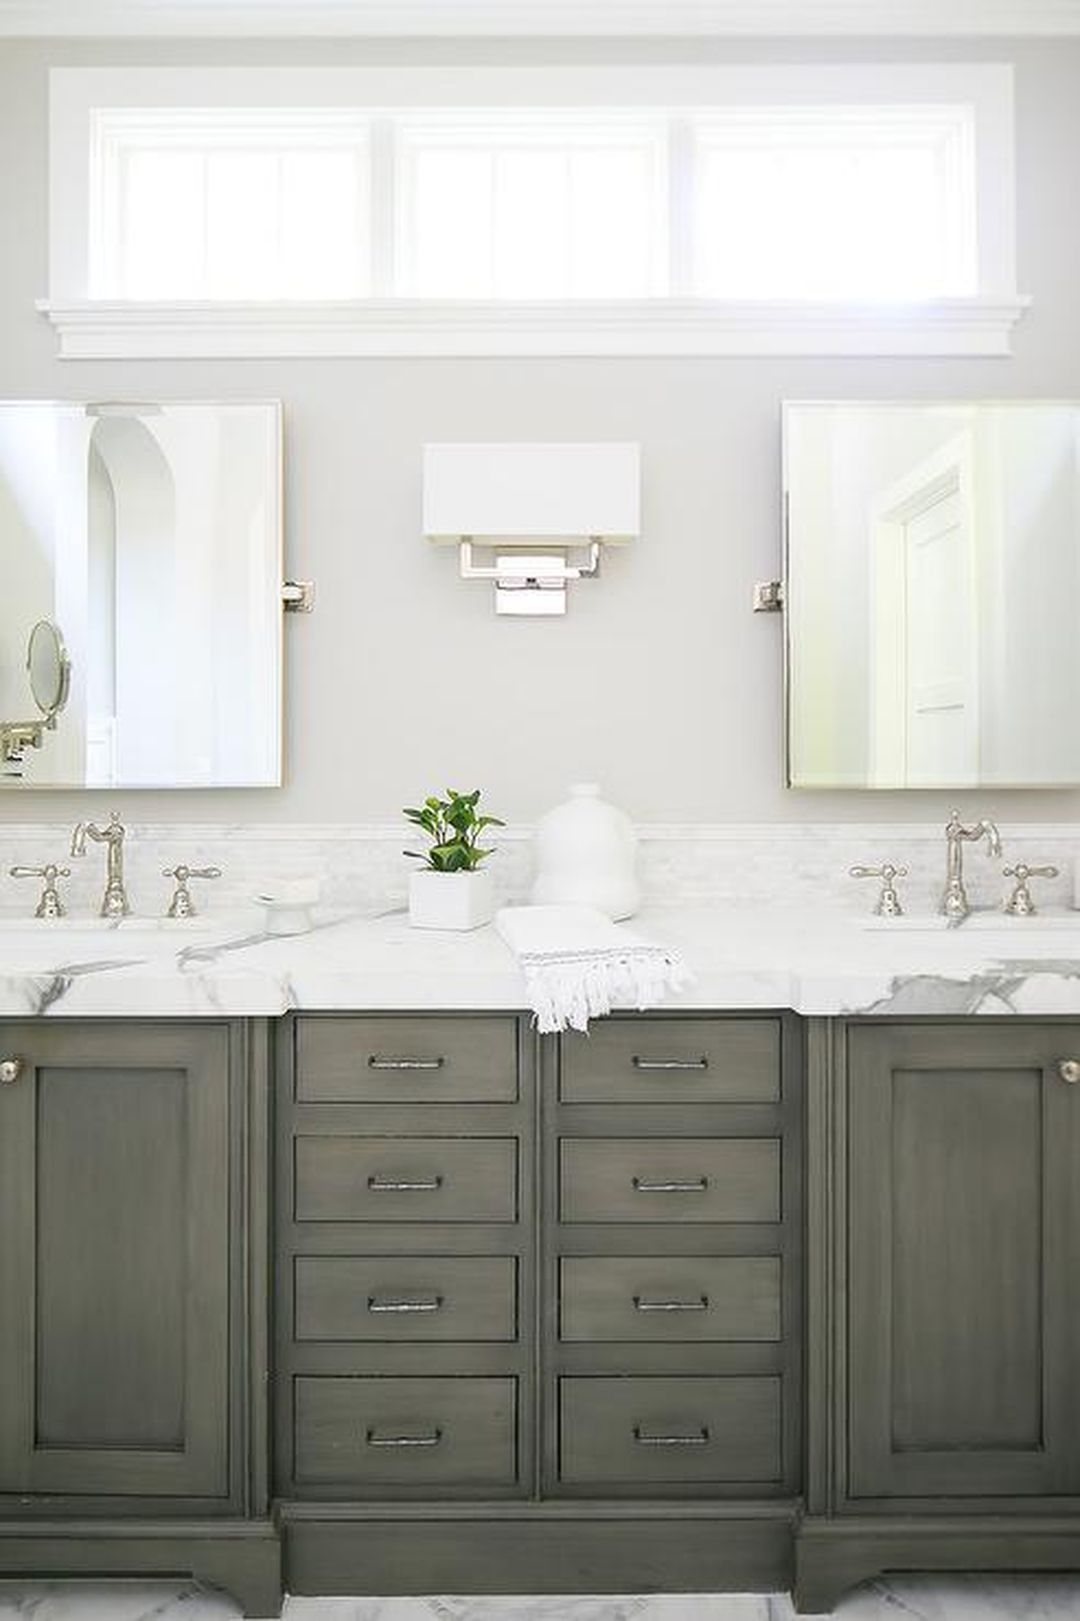 16 Outstanding Bathroom Vanity Design Ideas  Bathroom Vanity Alluring Design A Bathroom Vanity Review